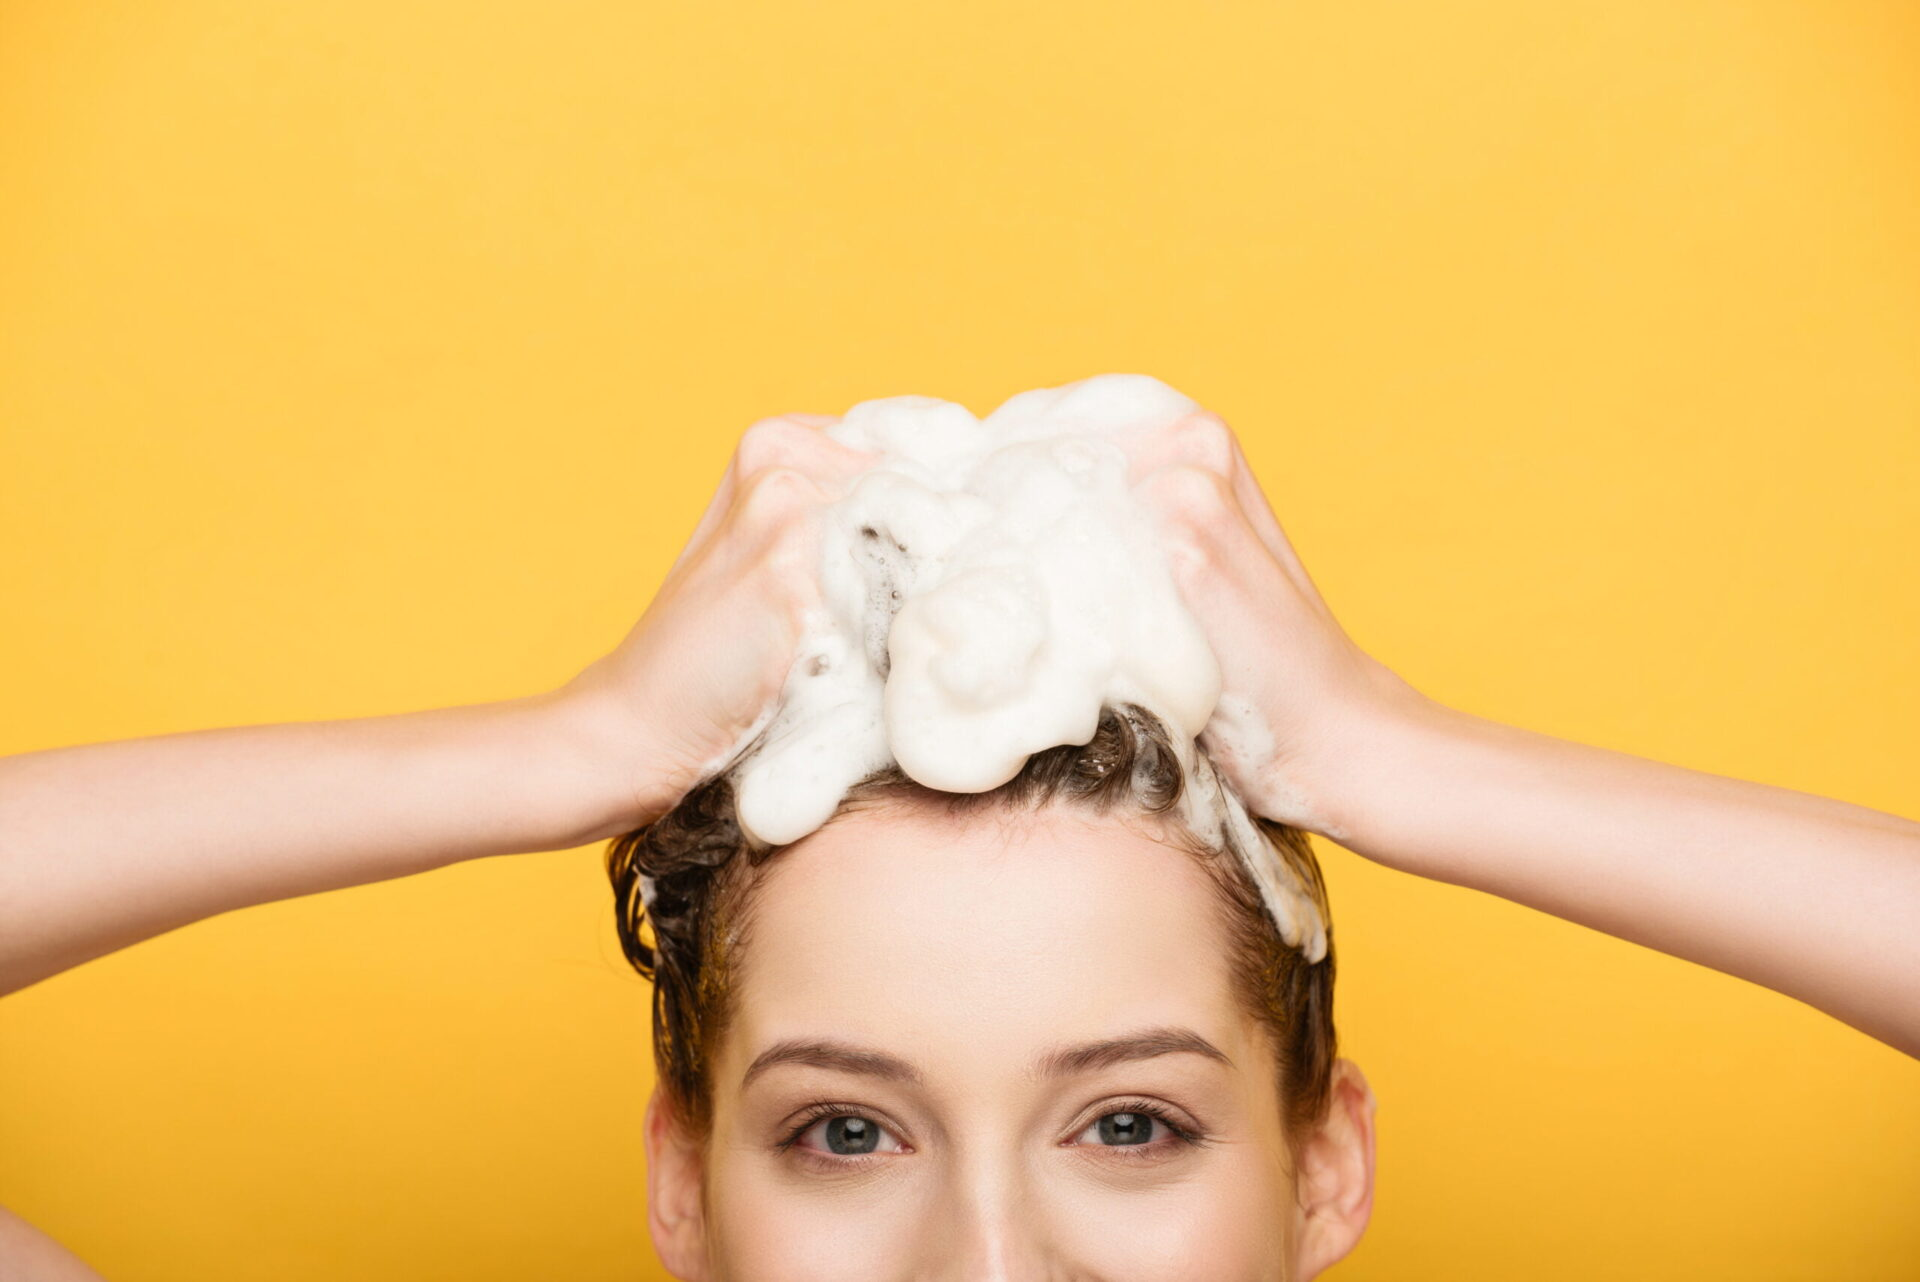 Woman washing her hair on yellow background